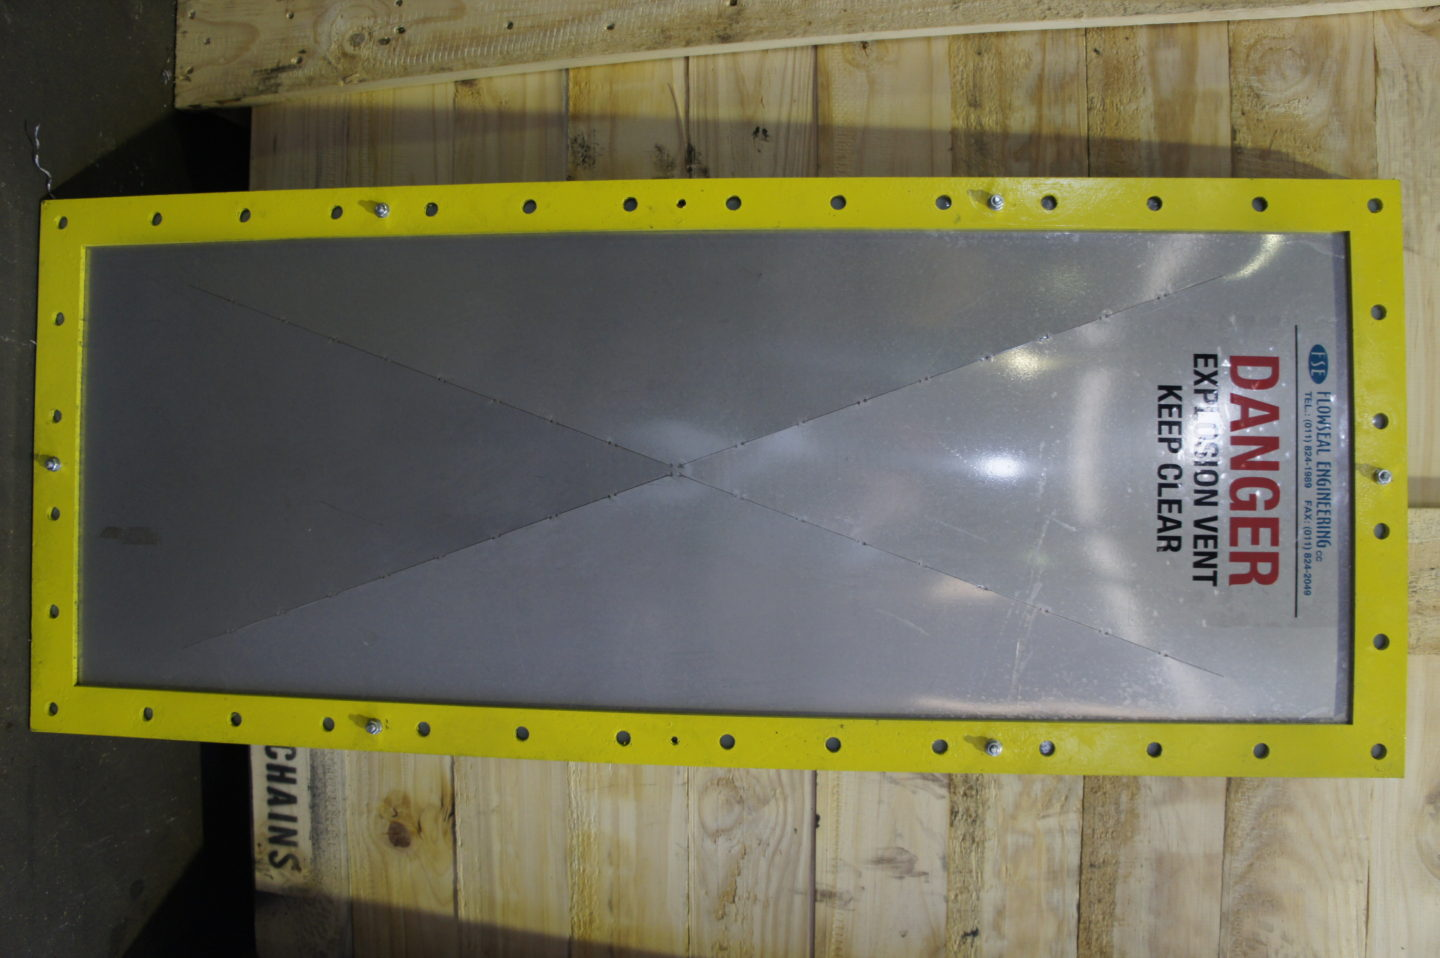 Explosion Panel Ready for use